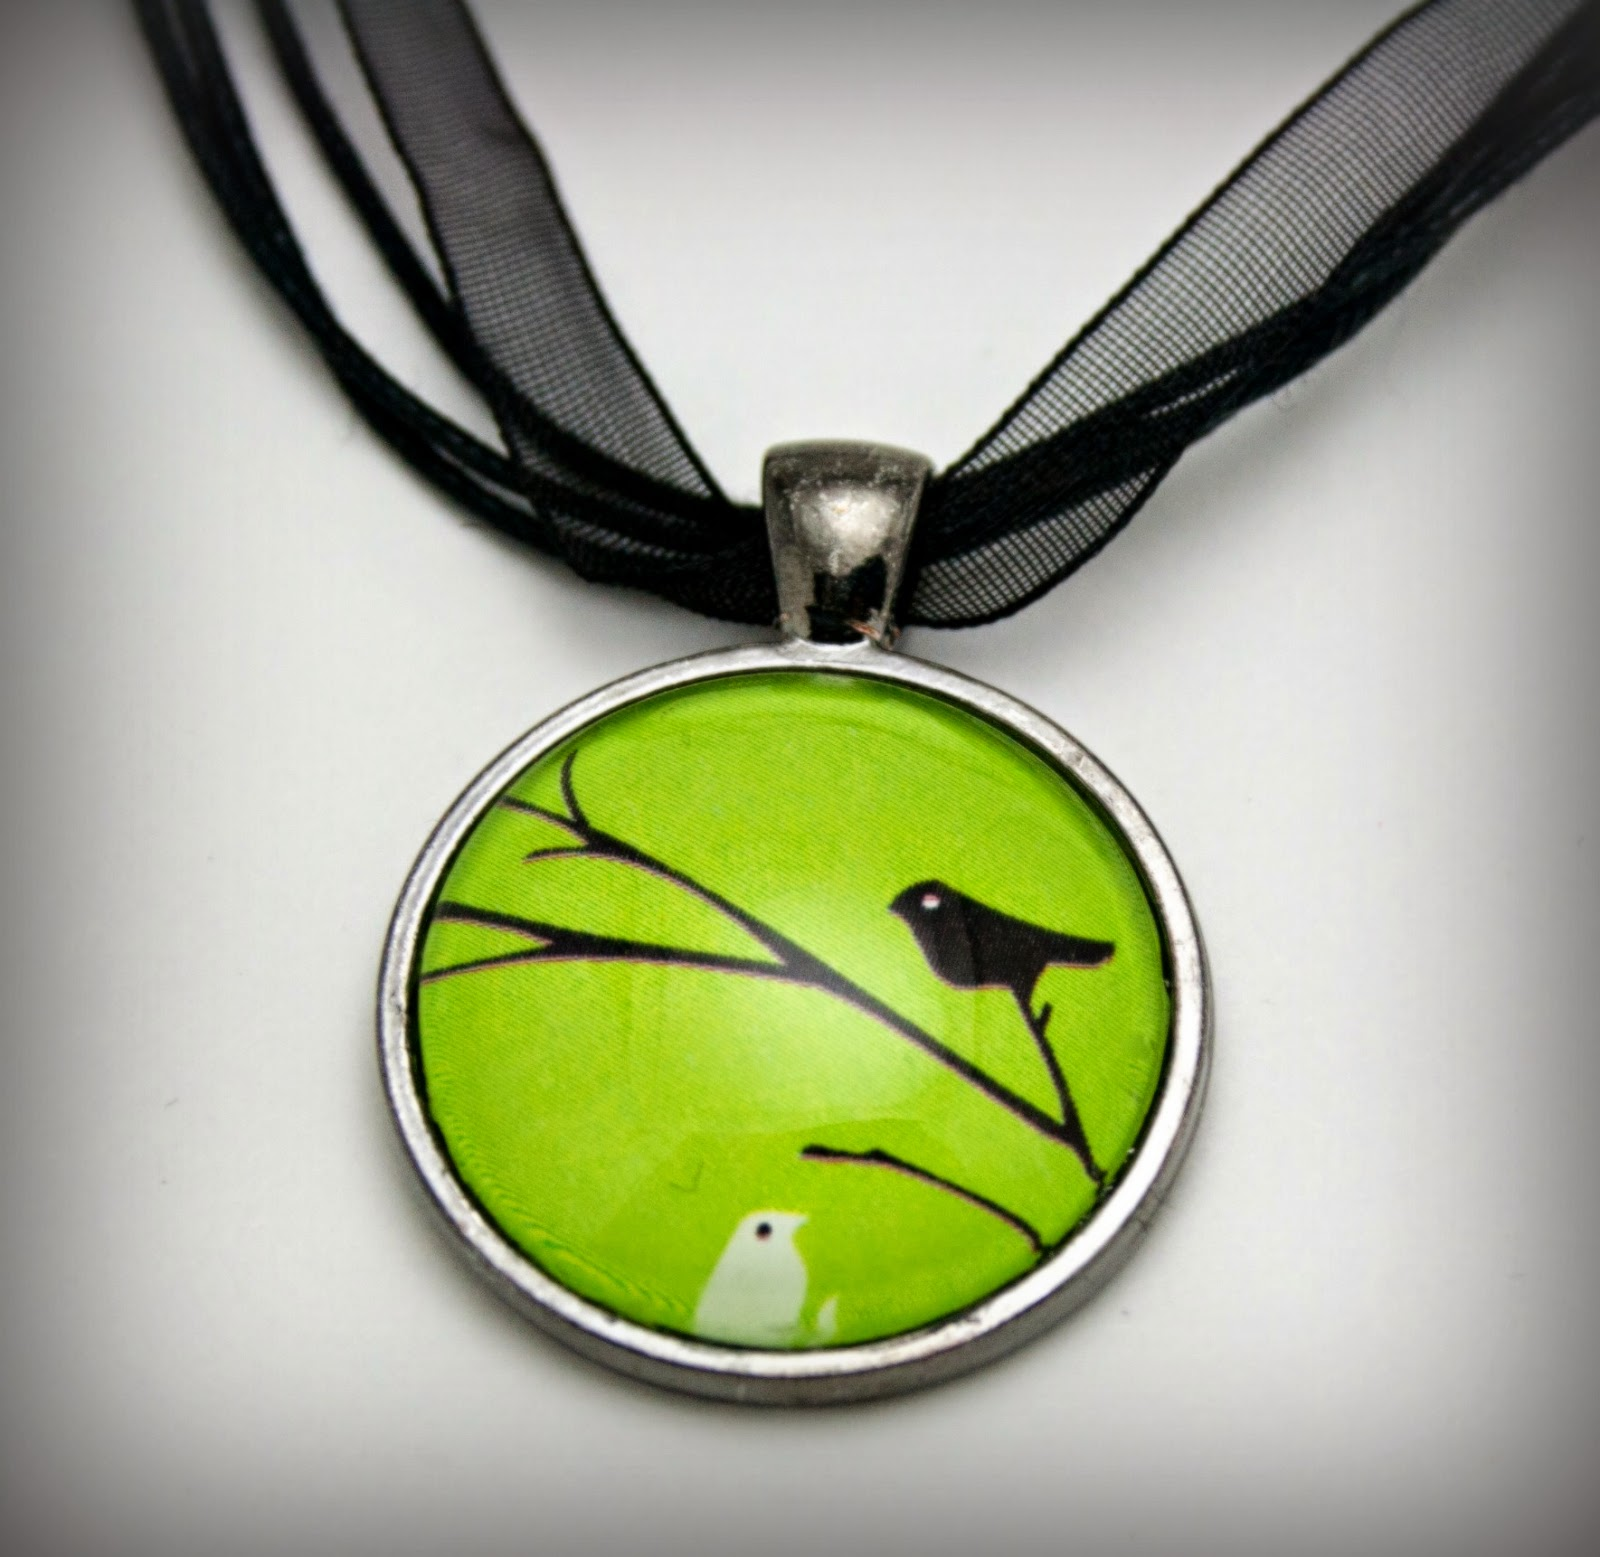 https://www.etsy.com/listing/188434183/bird-on-branch-necklace-glass-pendant?ref=shop_home_active_11